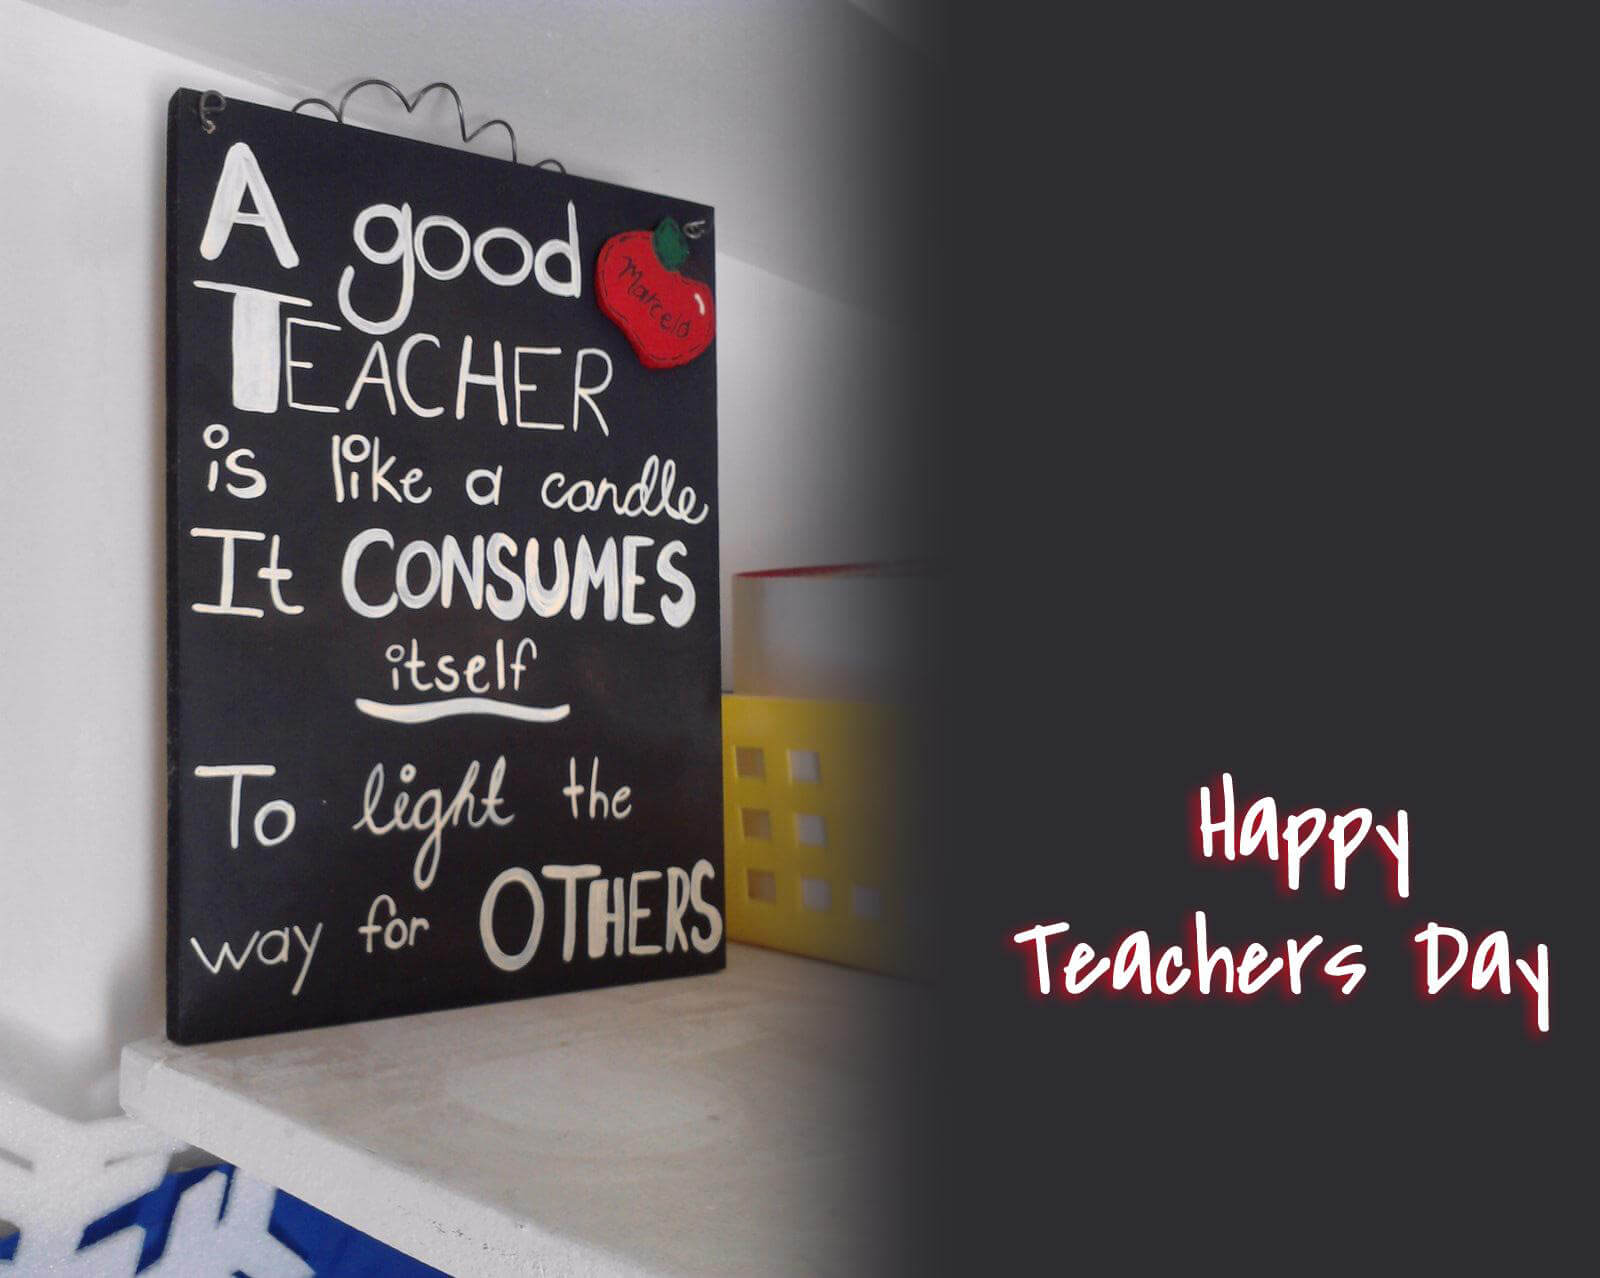 happy teachers day wishes quotes on a blackboard